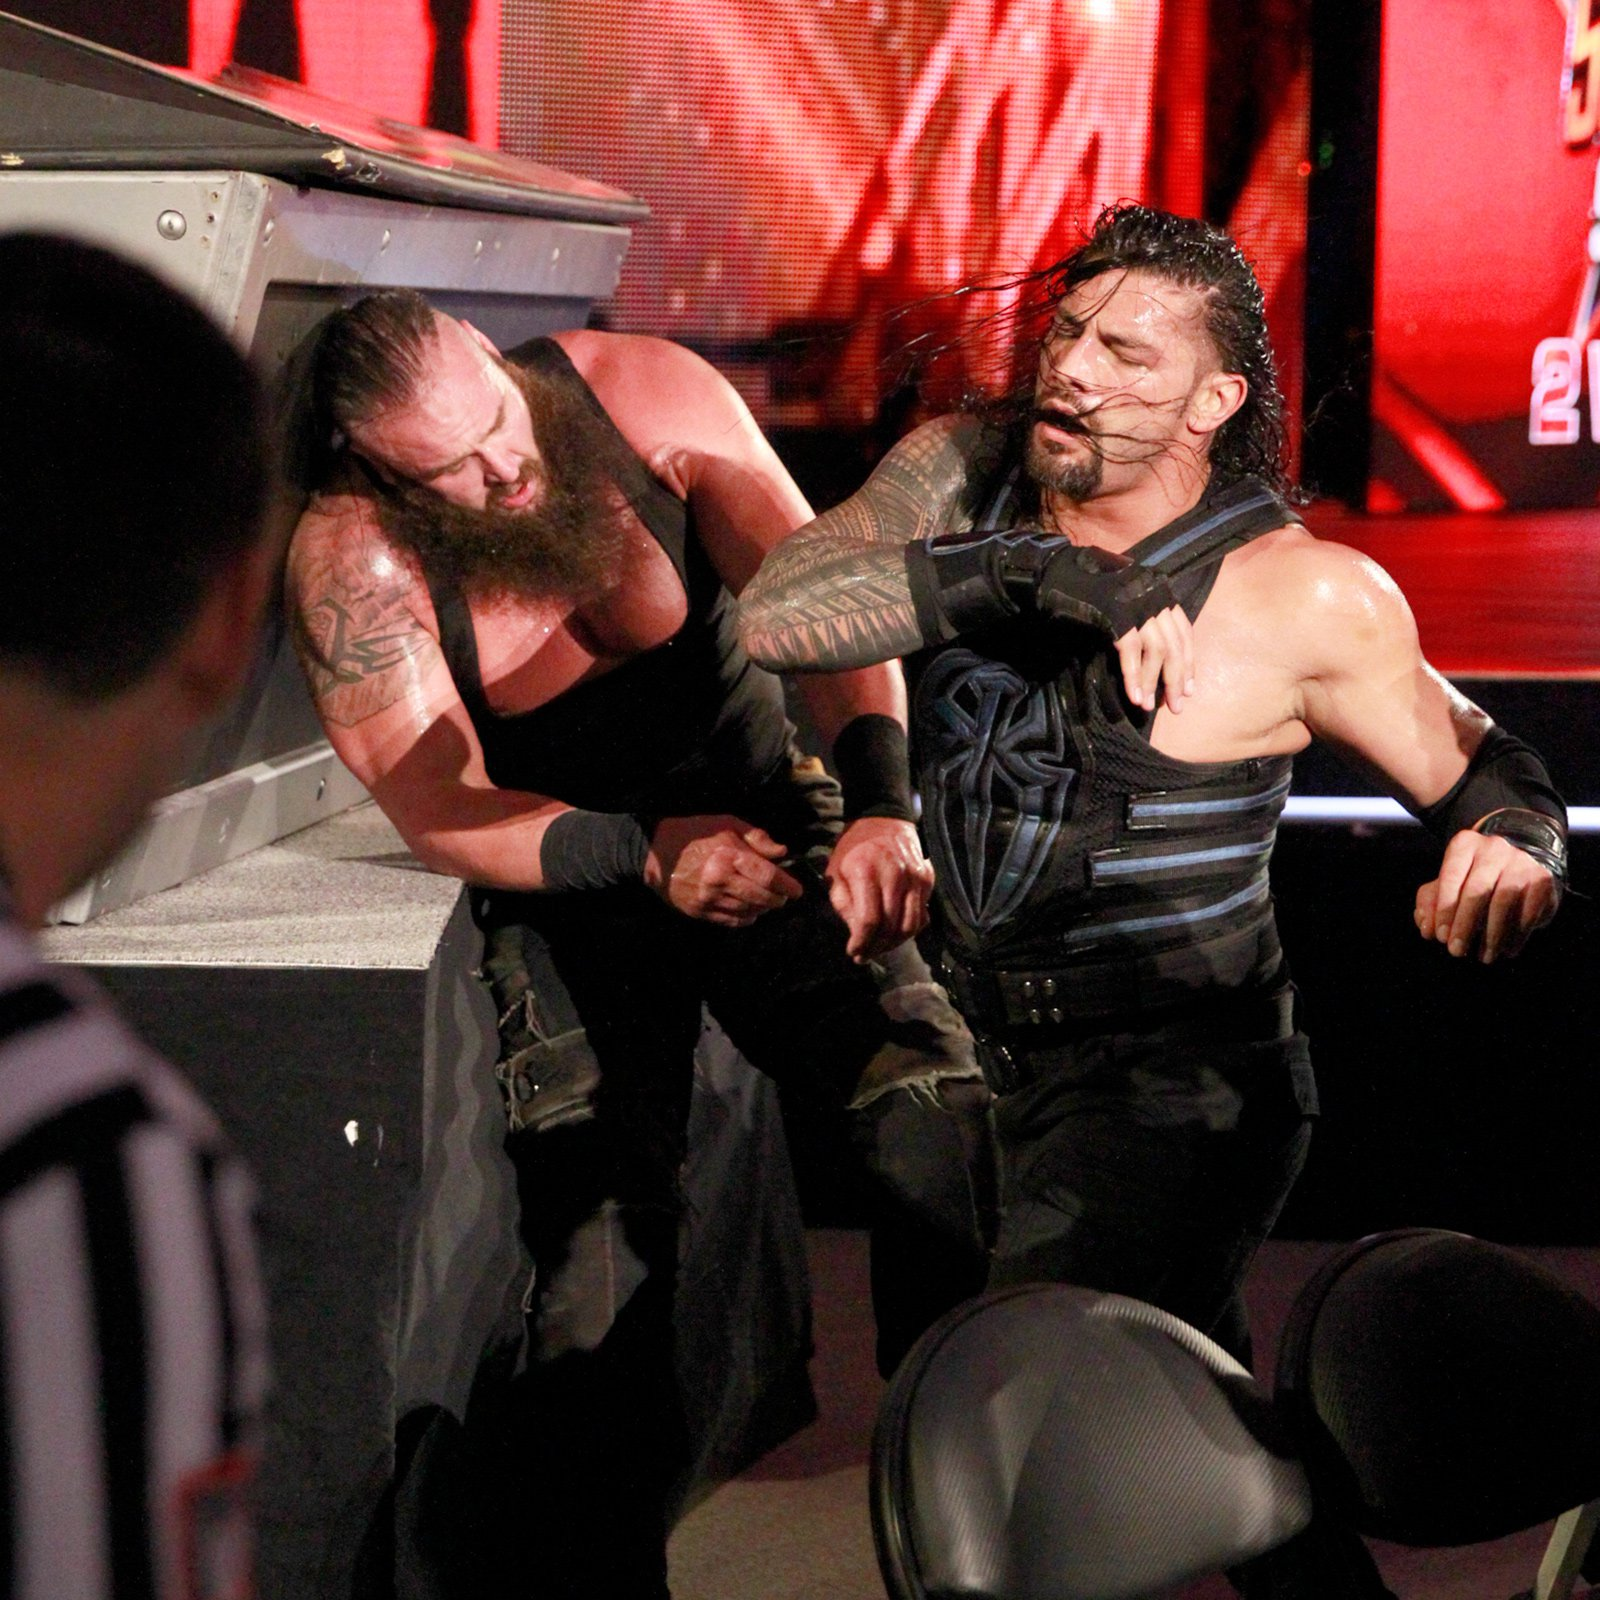 Reigns and Strowman continue to trade blows near the announce table.